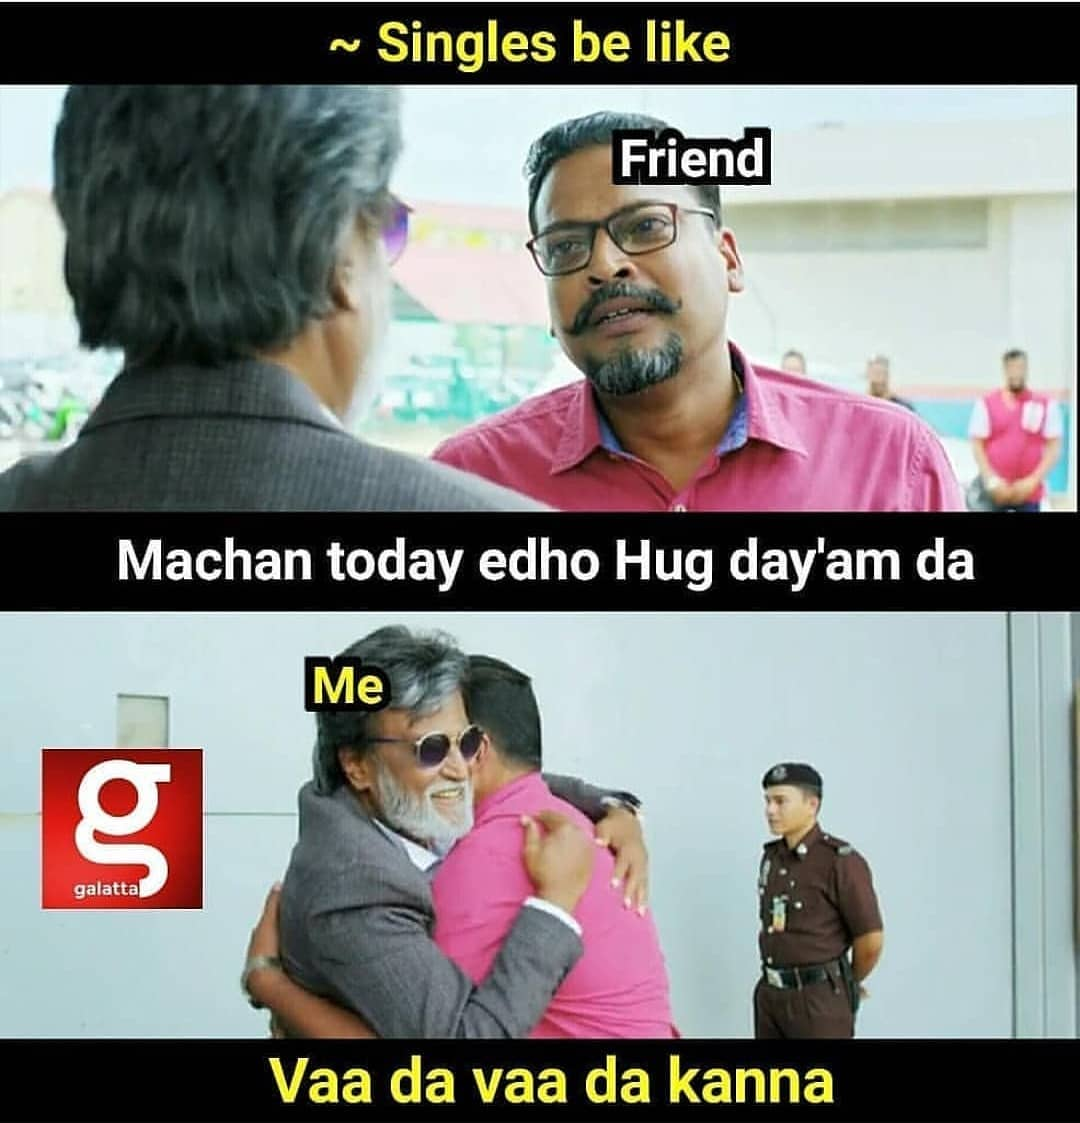 Hug Day Parithabangal Singles Be Like Meme Tamil Memes